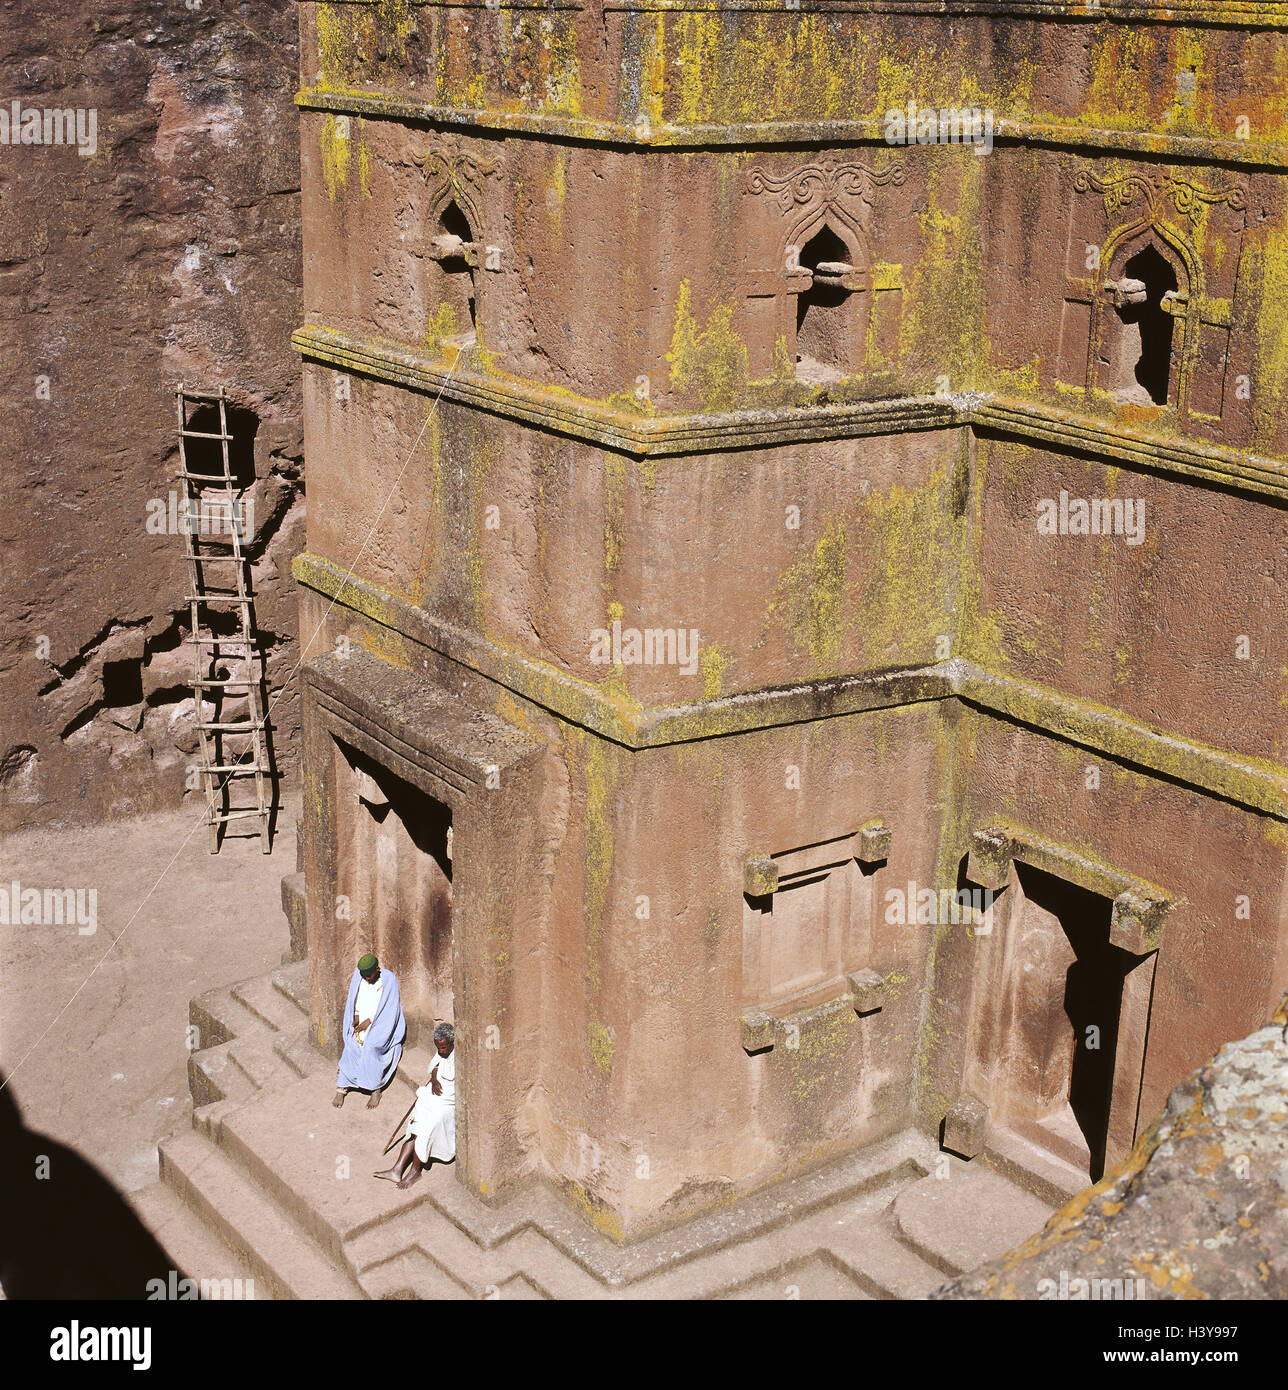 Ethiopia, Amharahochland, Lalibela, rock church, Abba Libanos, Africa, North, Africa, Binnenstadt, structure, church, - Stock Image